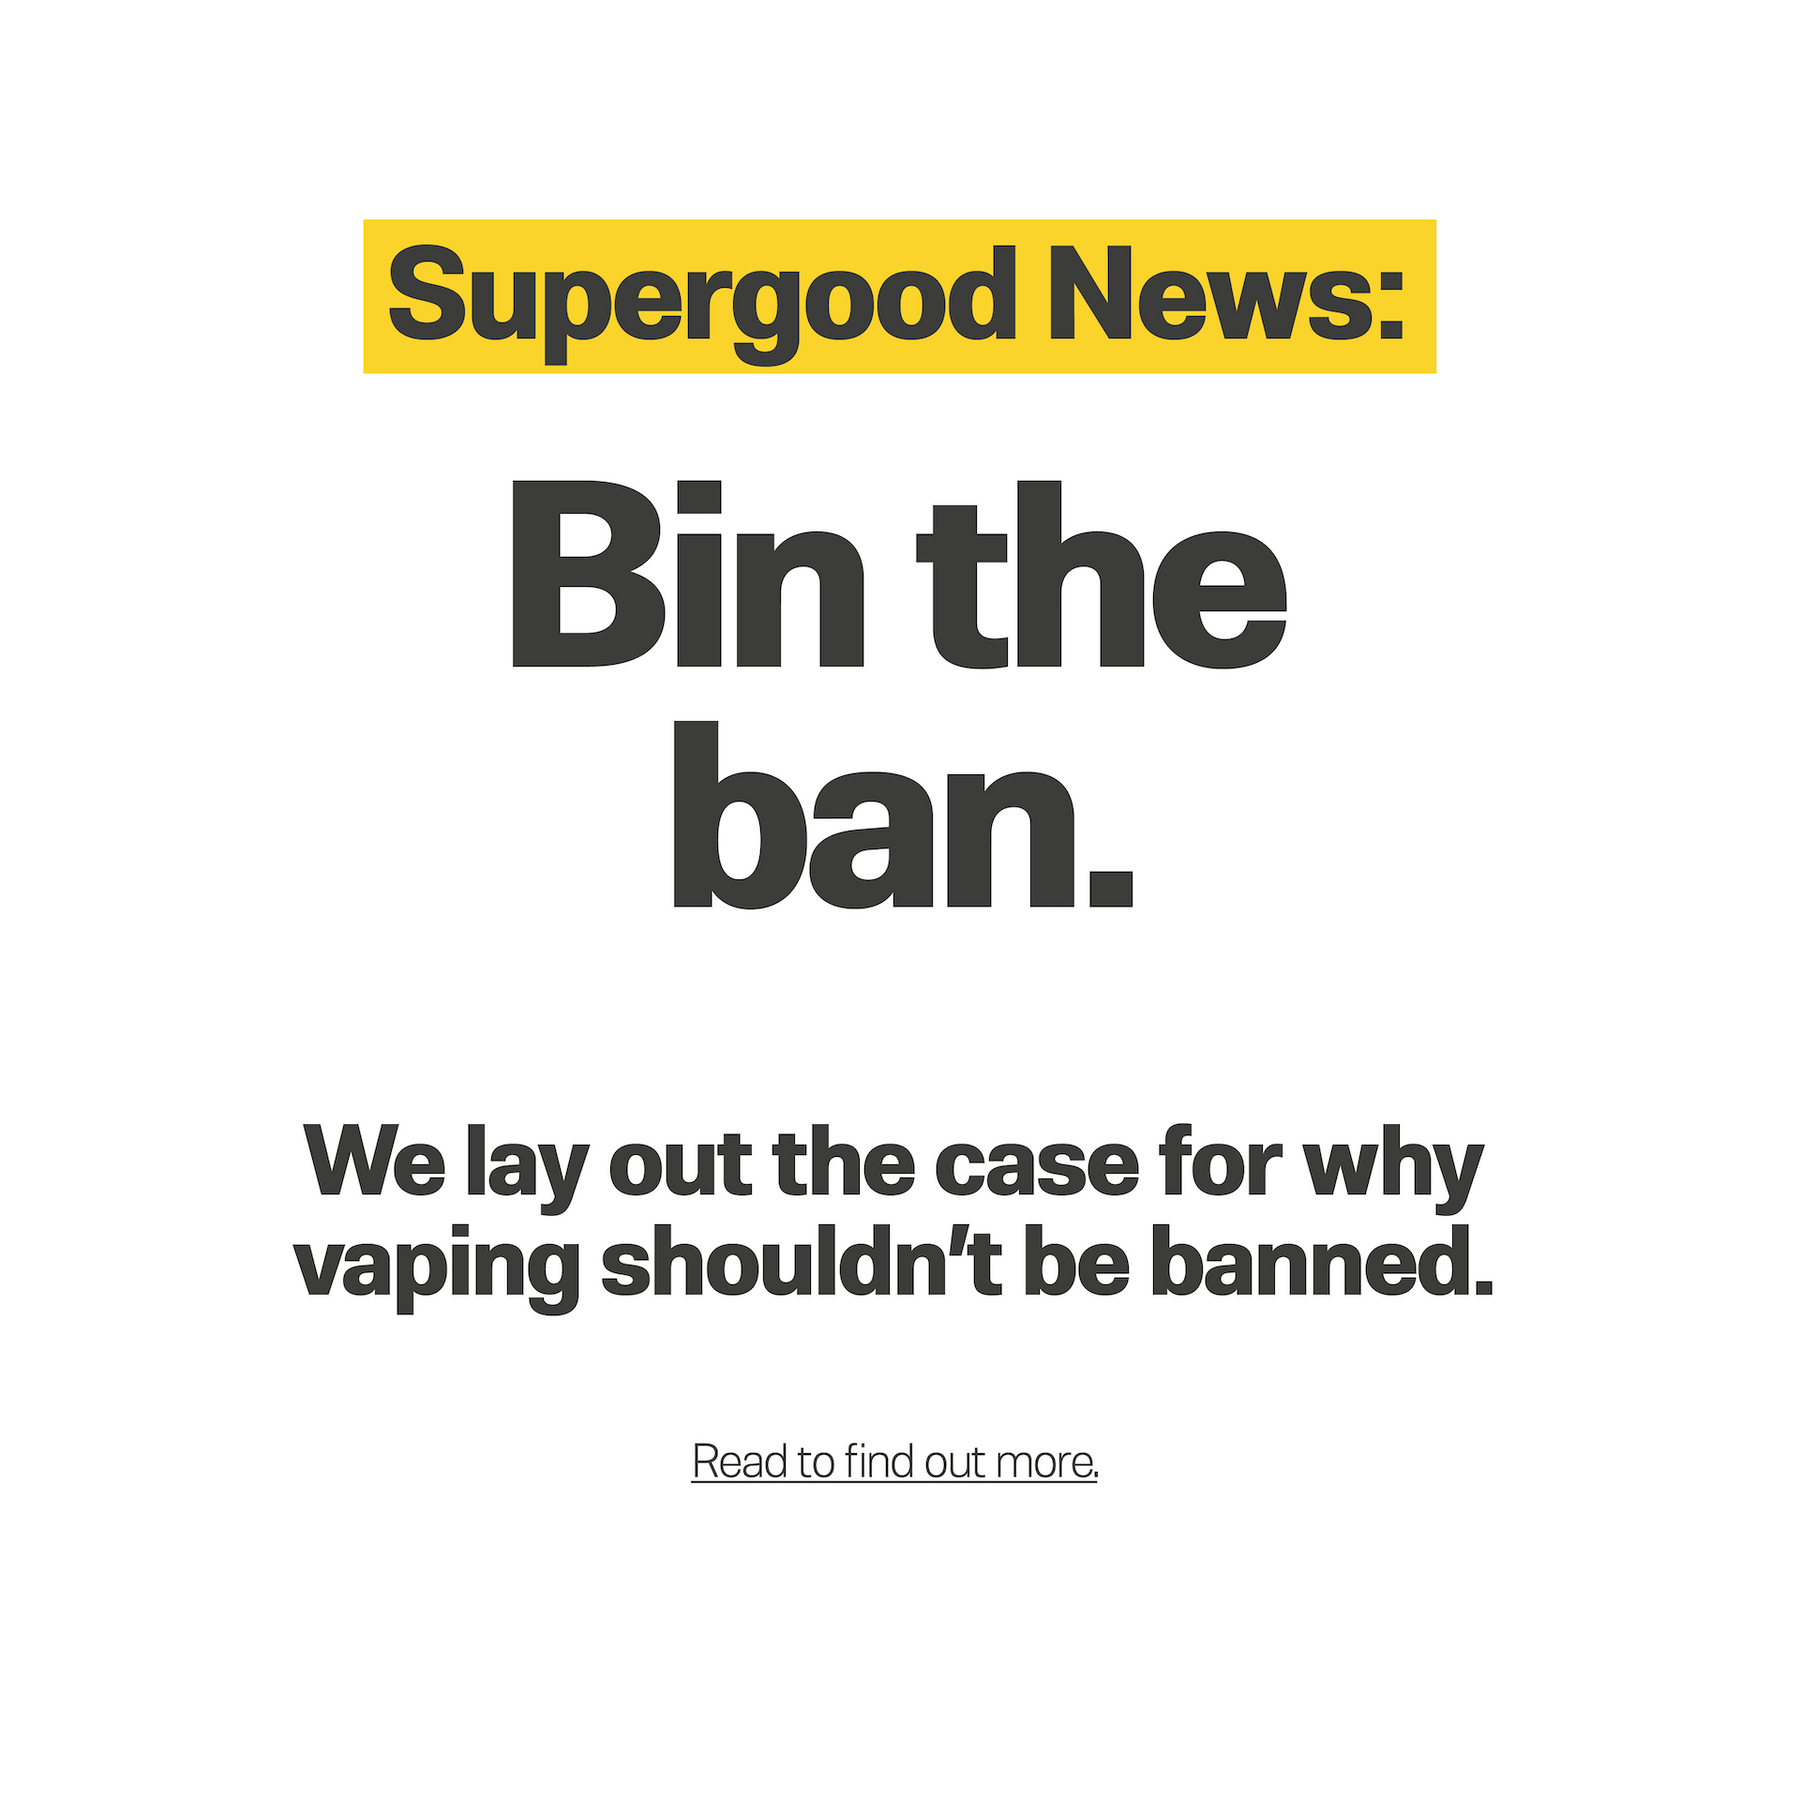 Vaping shouldn't be banned.